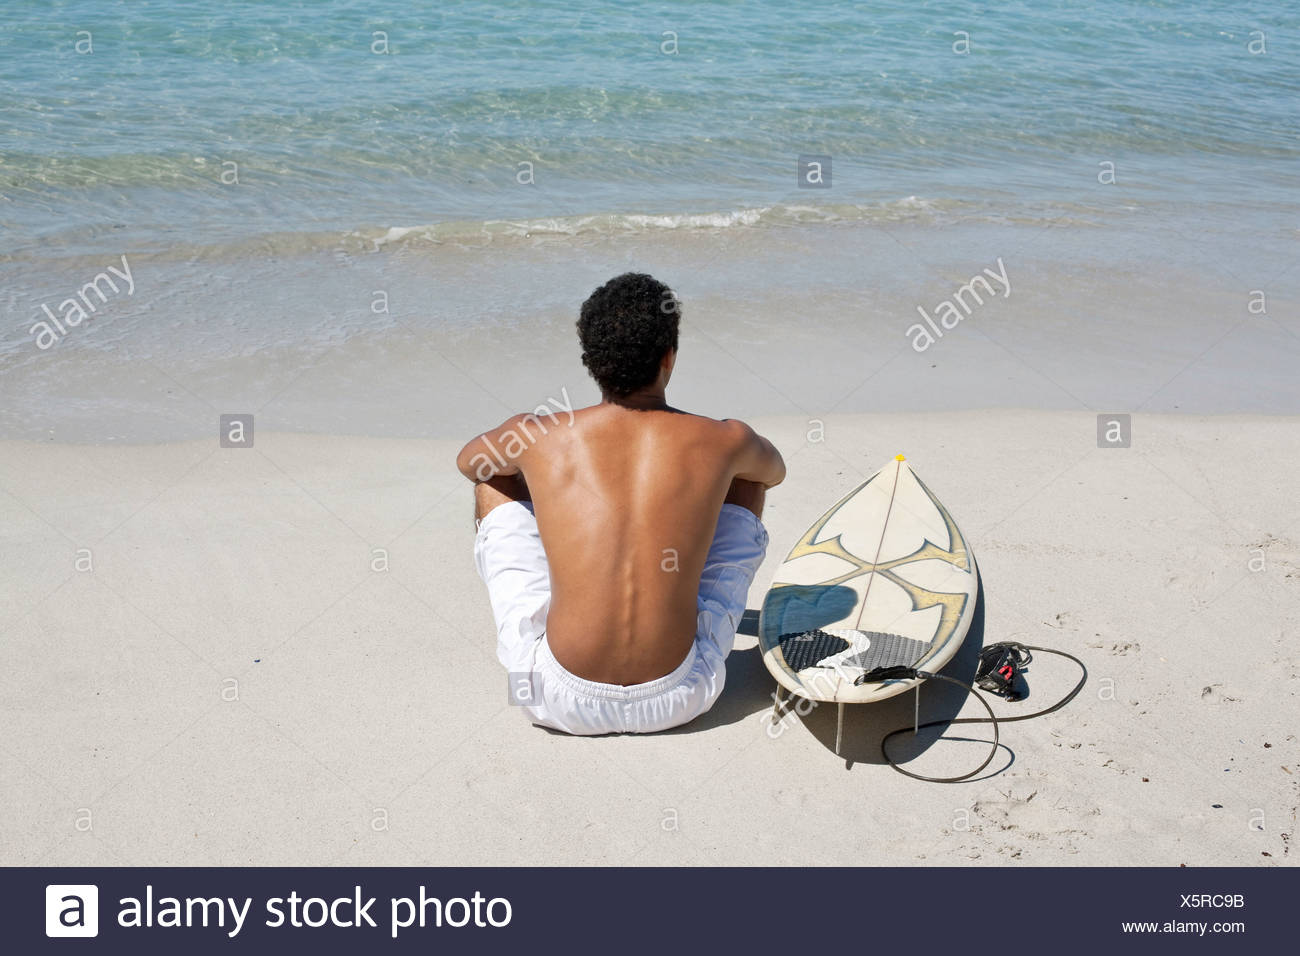 Rear view of young man sitting on beach with surfboard - Stock Image